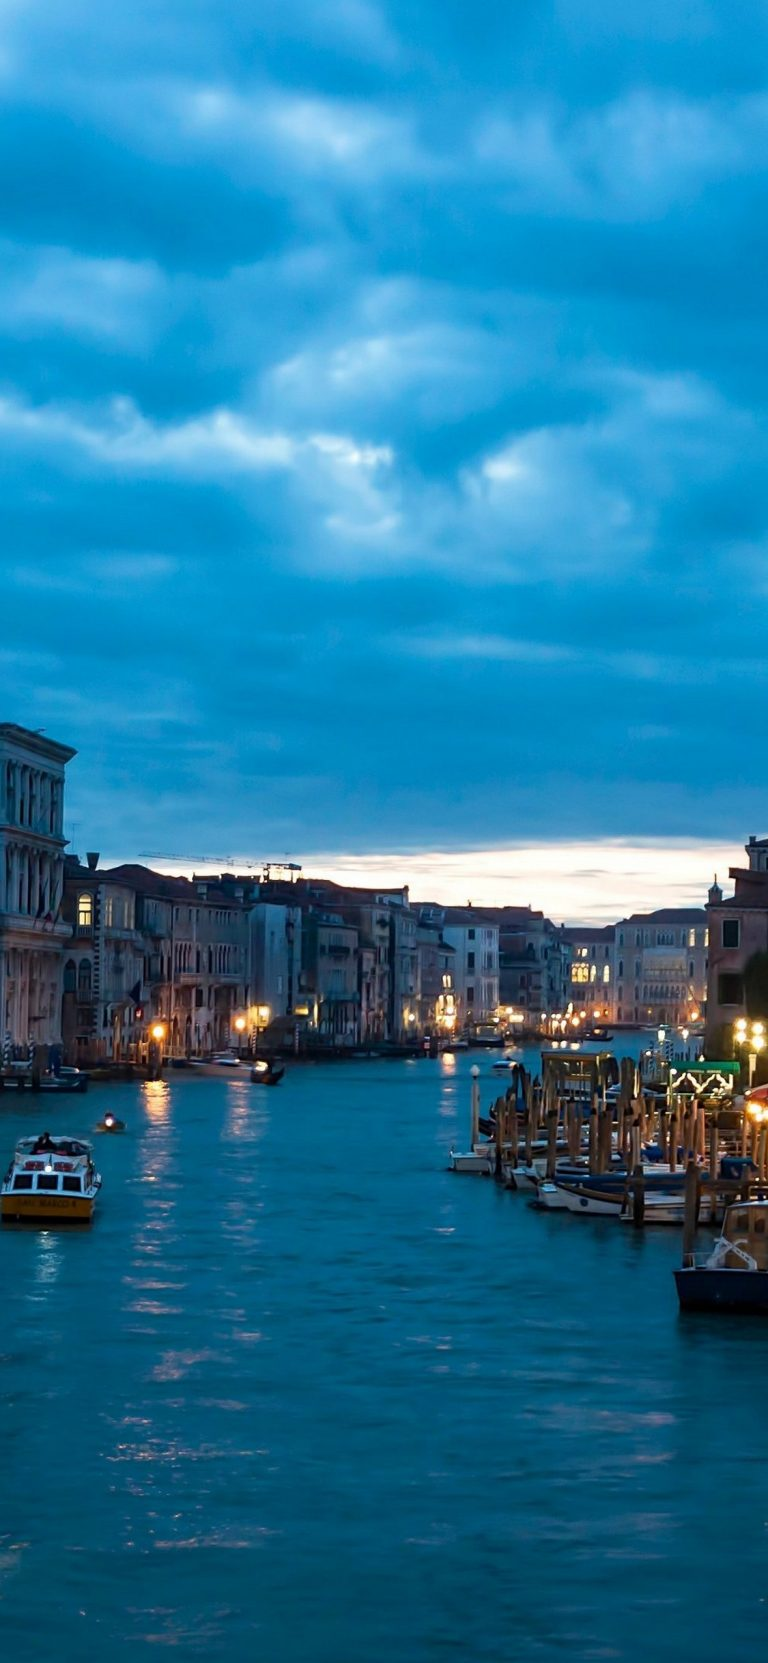 Venice HD Wallpaper 1125x2436 768x1663